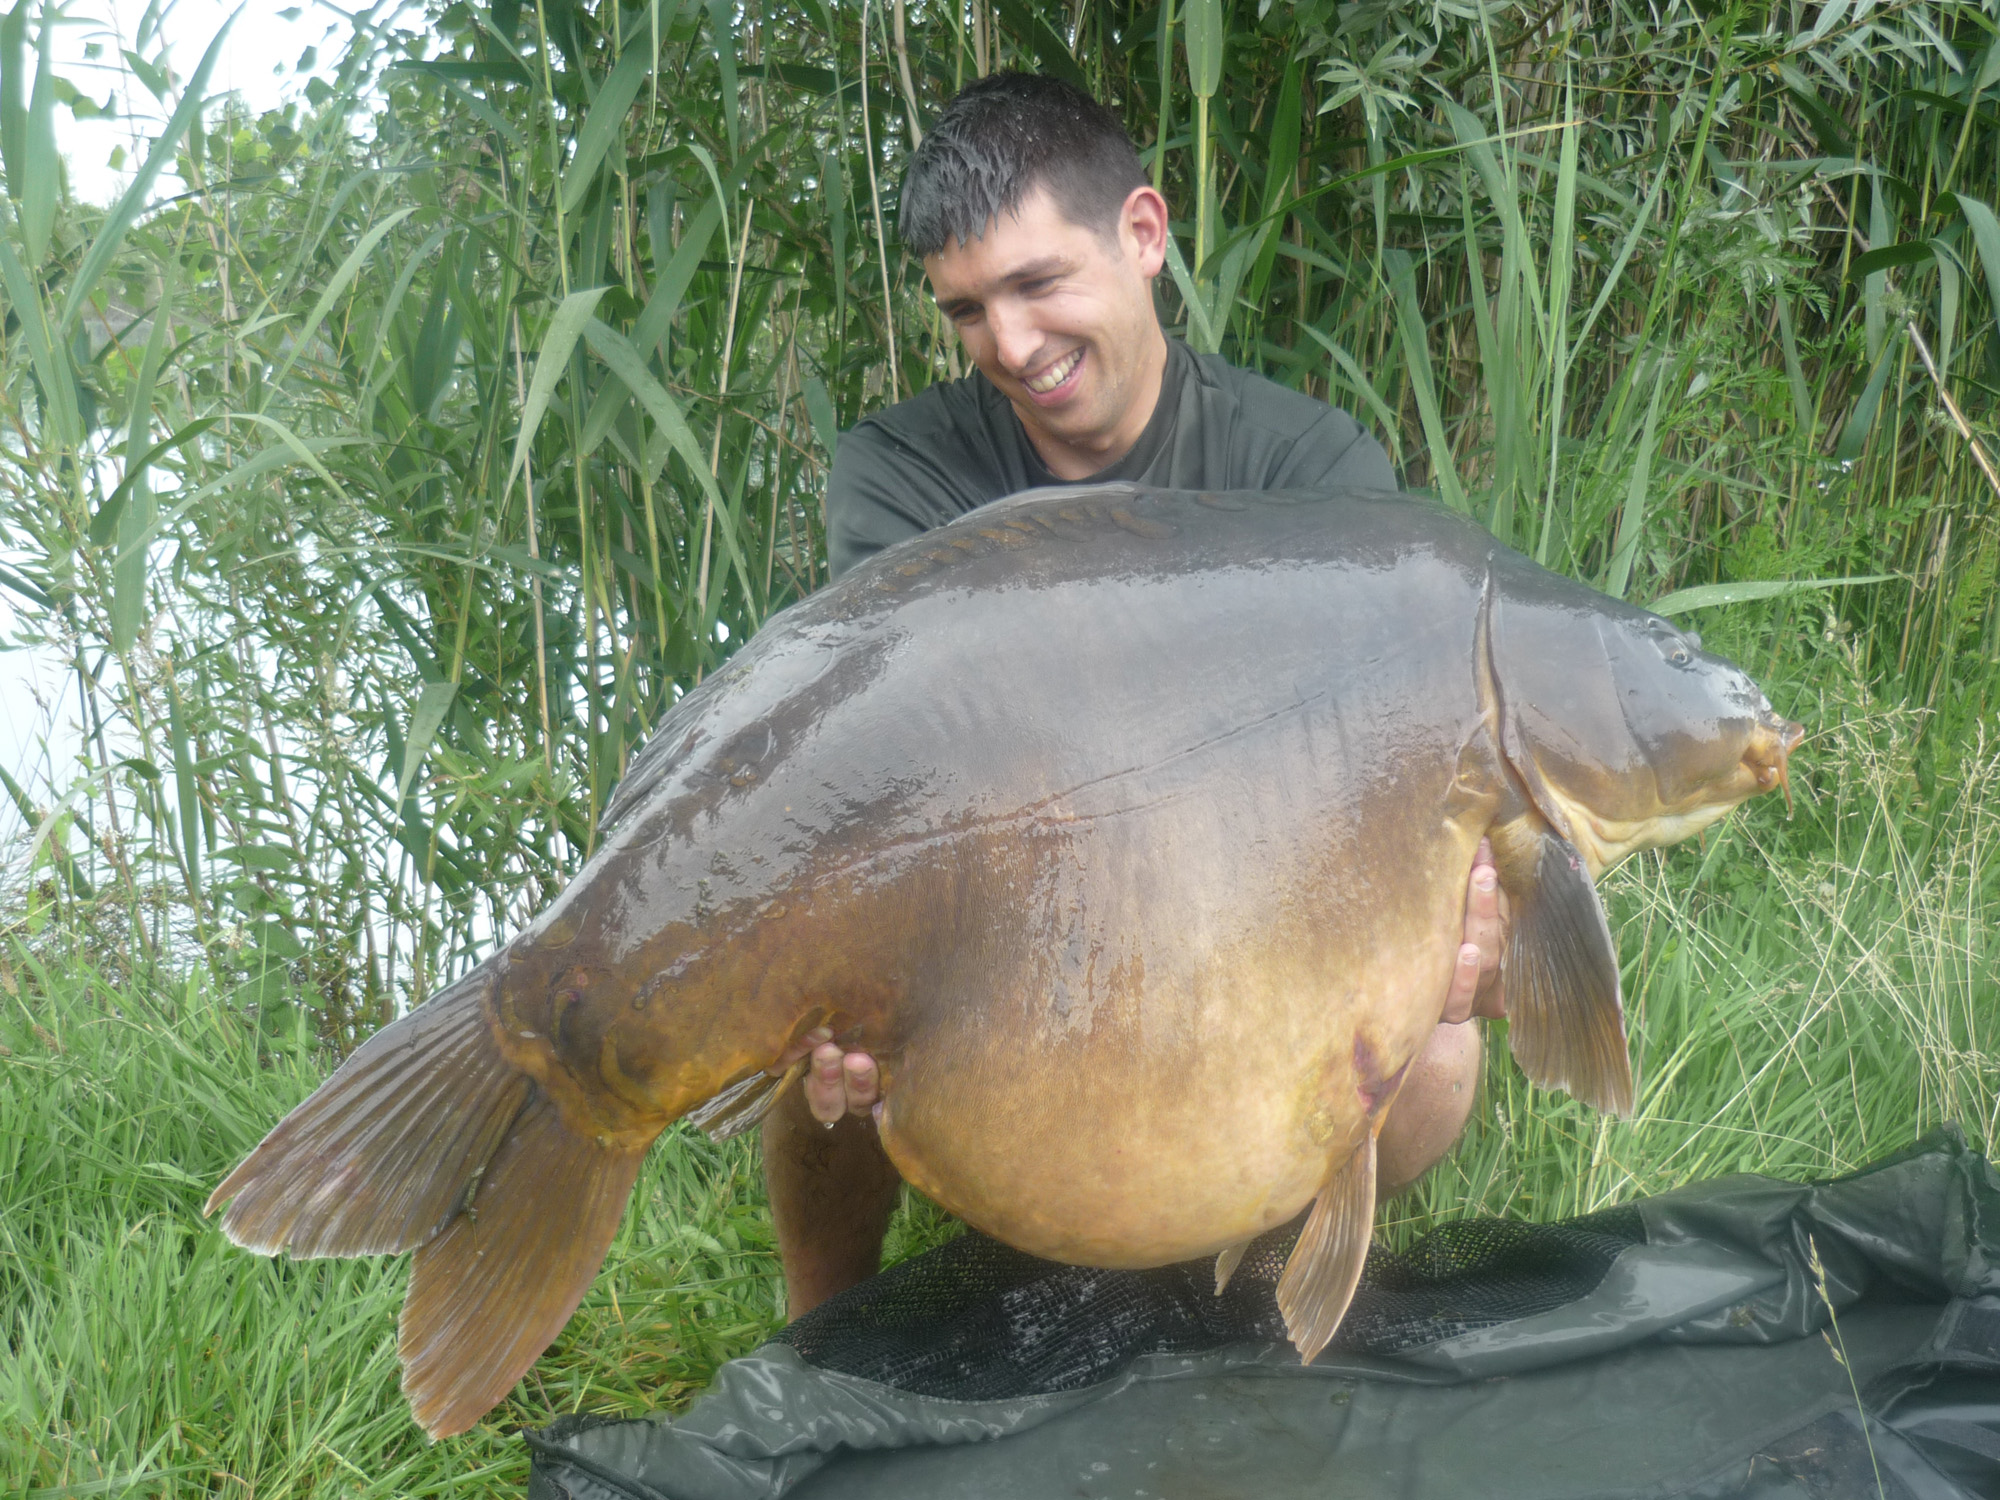 http://www.starbaits.com/fichiers/images/team/gallery/DUCERE_Cedric/4-DUCERE-CEDRIC.JPG